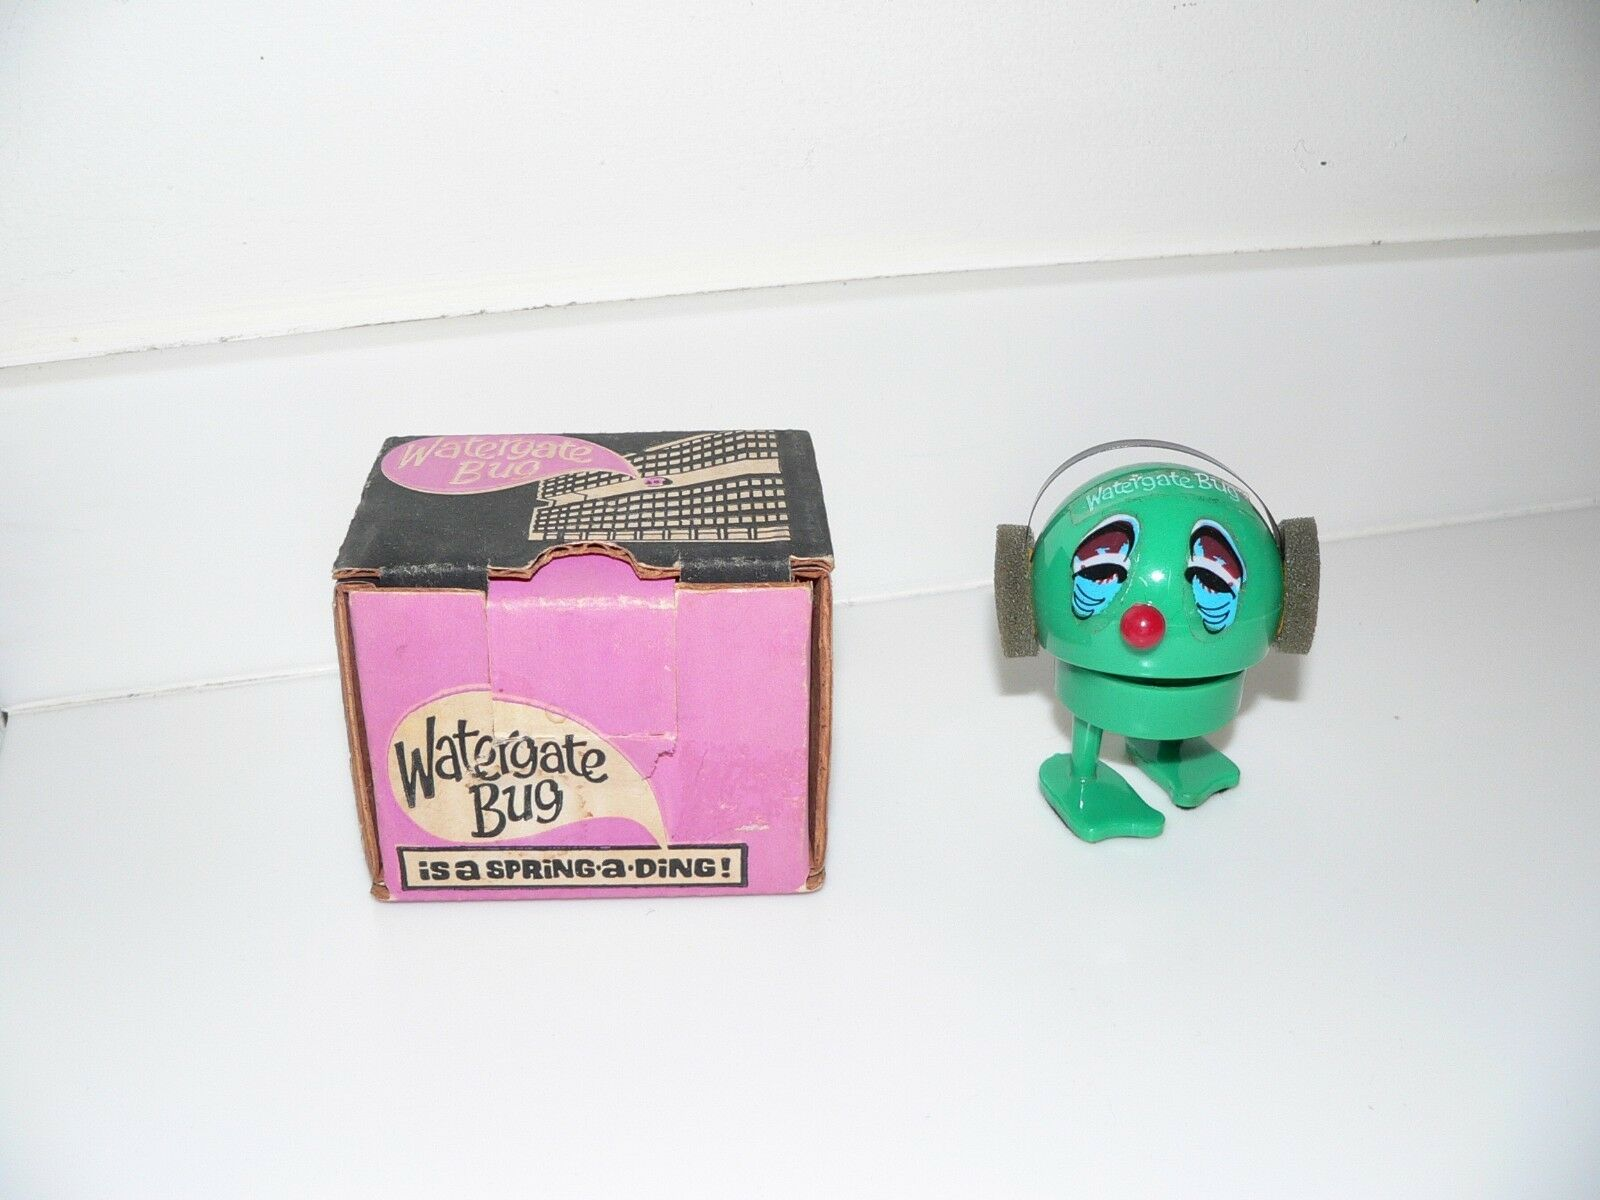 RARE 1973 Bobbing Watergate Bug   Spring-a-Ding in Original Box - Made in USA